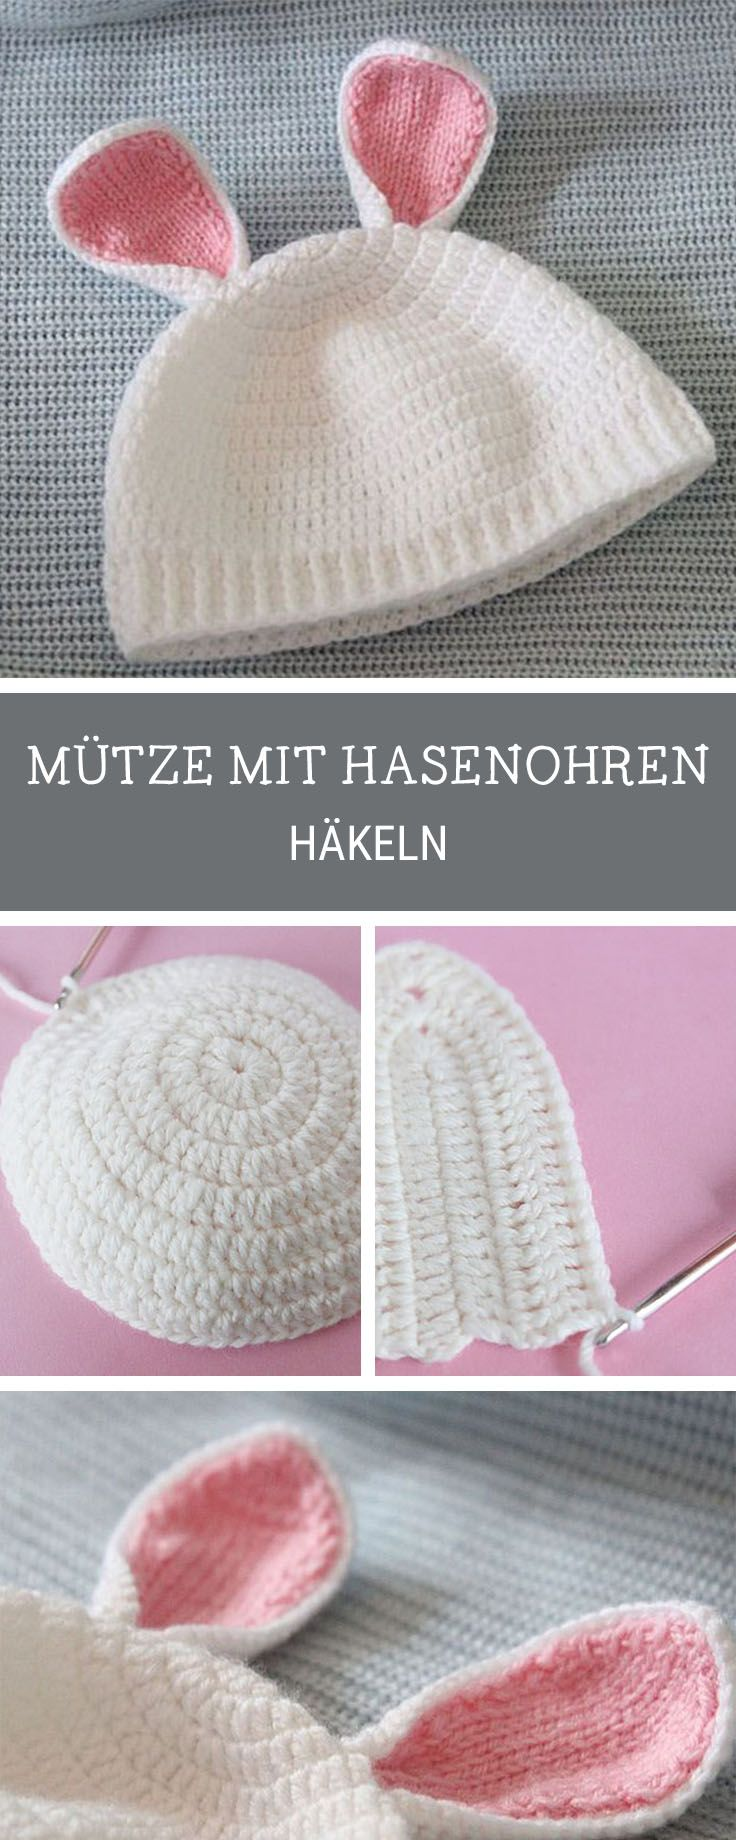 249 best häkeln images on Pinterest | Knit crochet, Amigurumi ...